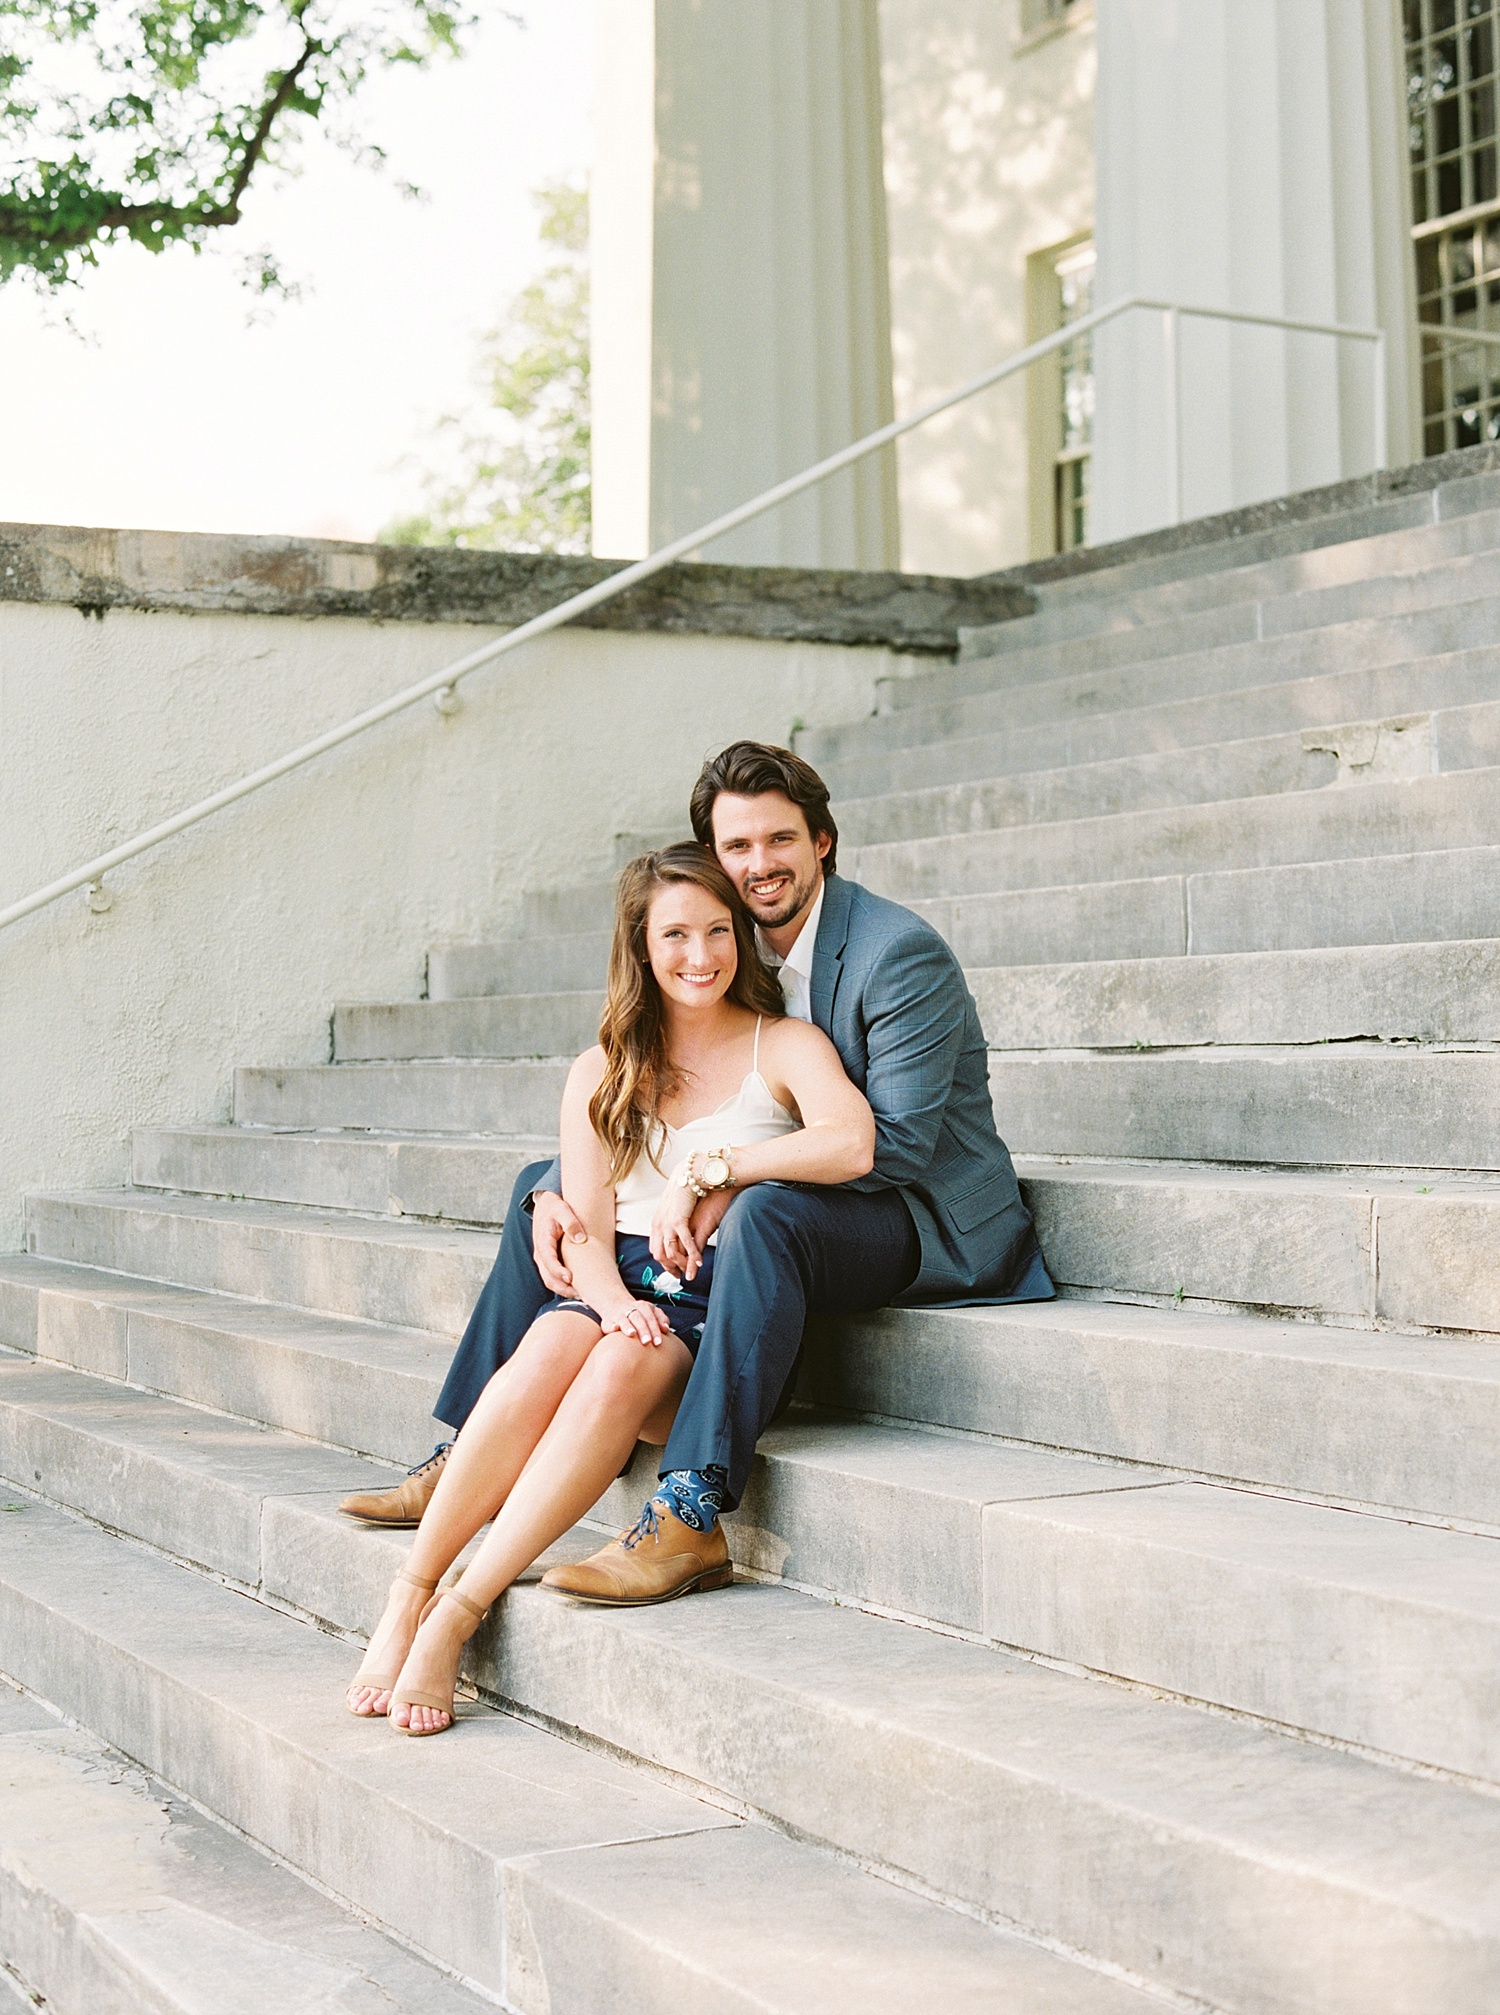 Downtown Lexington Engagement Session Talon Winery Picnic Engagement Session Gal Meets Glam Anthropologie Dress Laura Bodnar Photography Lexington Wedding Photographer Film Photography_0008-1.jpg